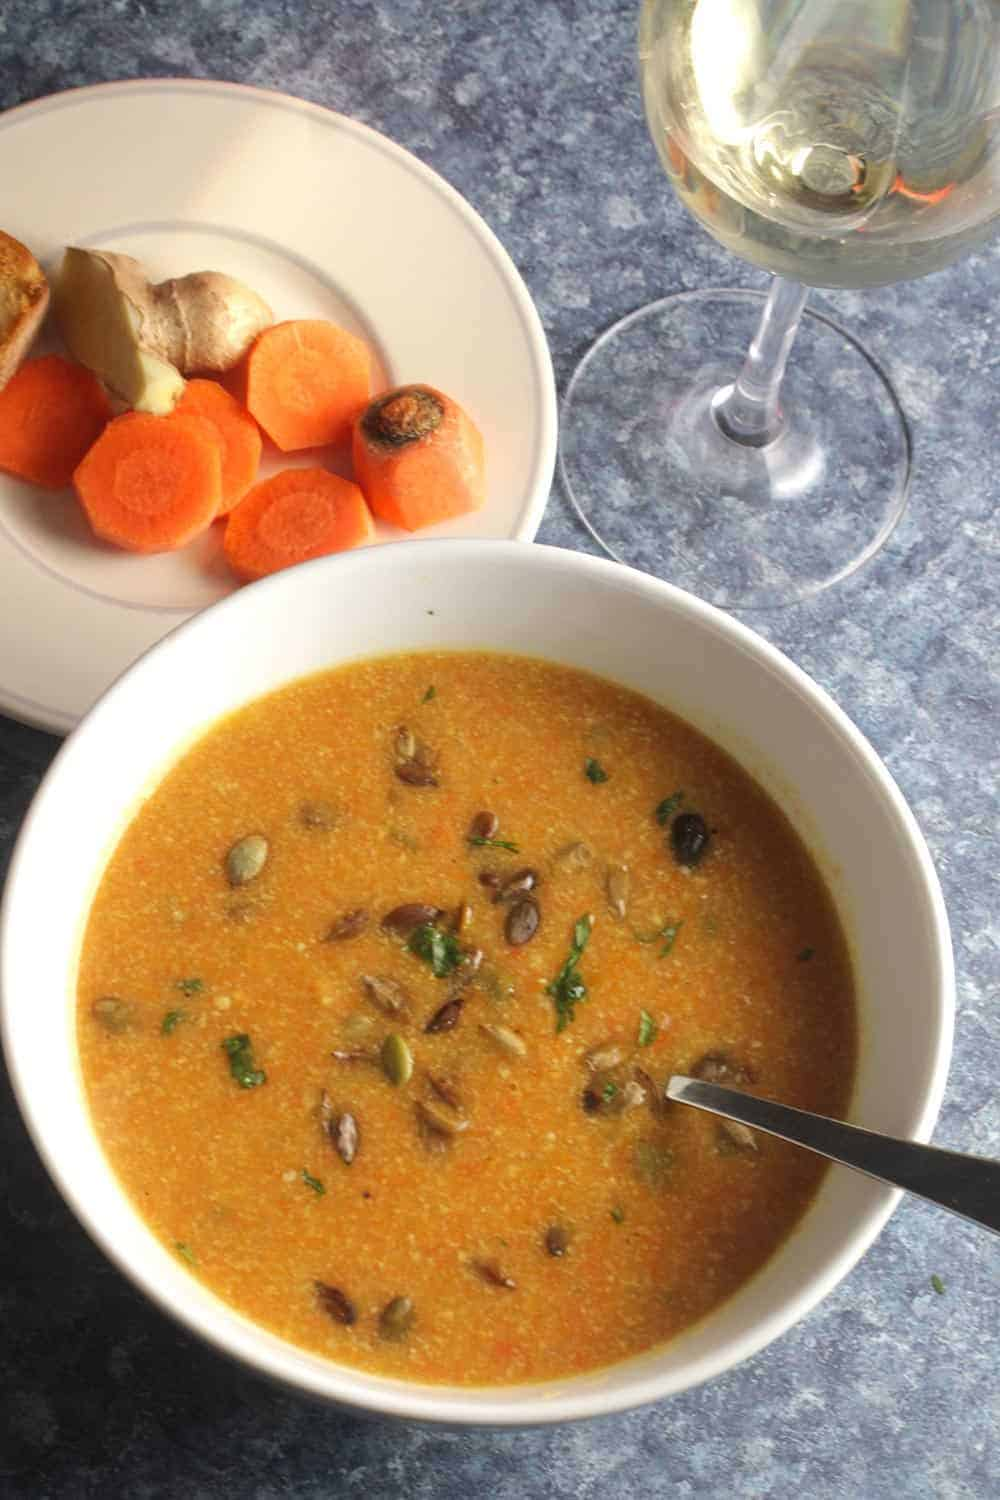 bowl of carrot ginger soup with white wine.